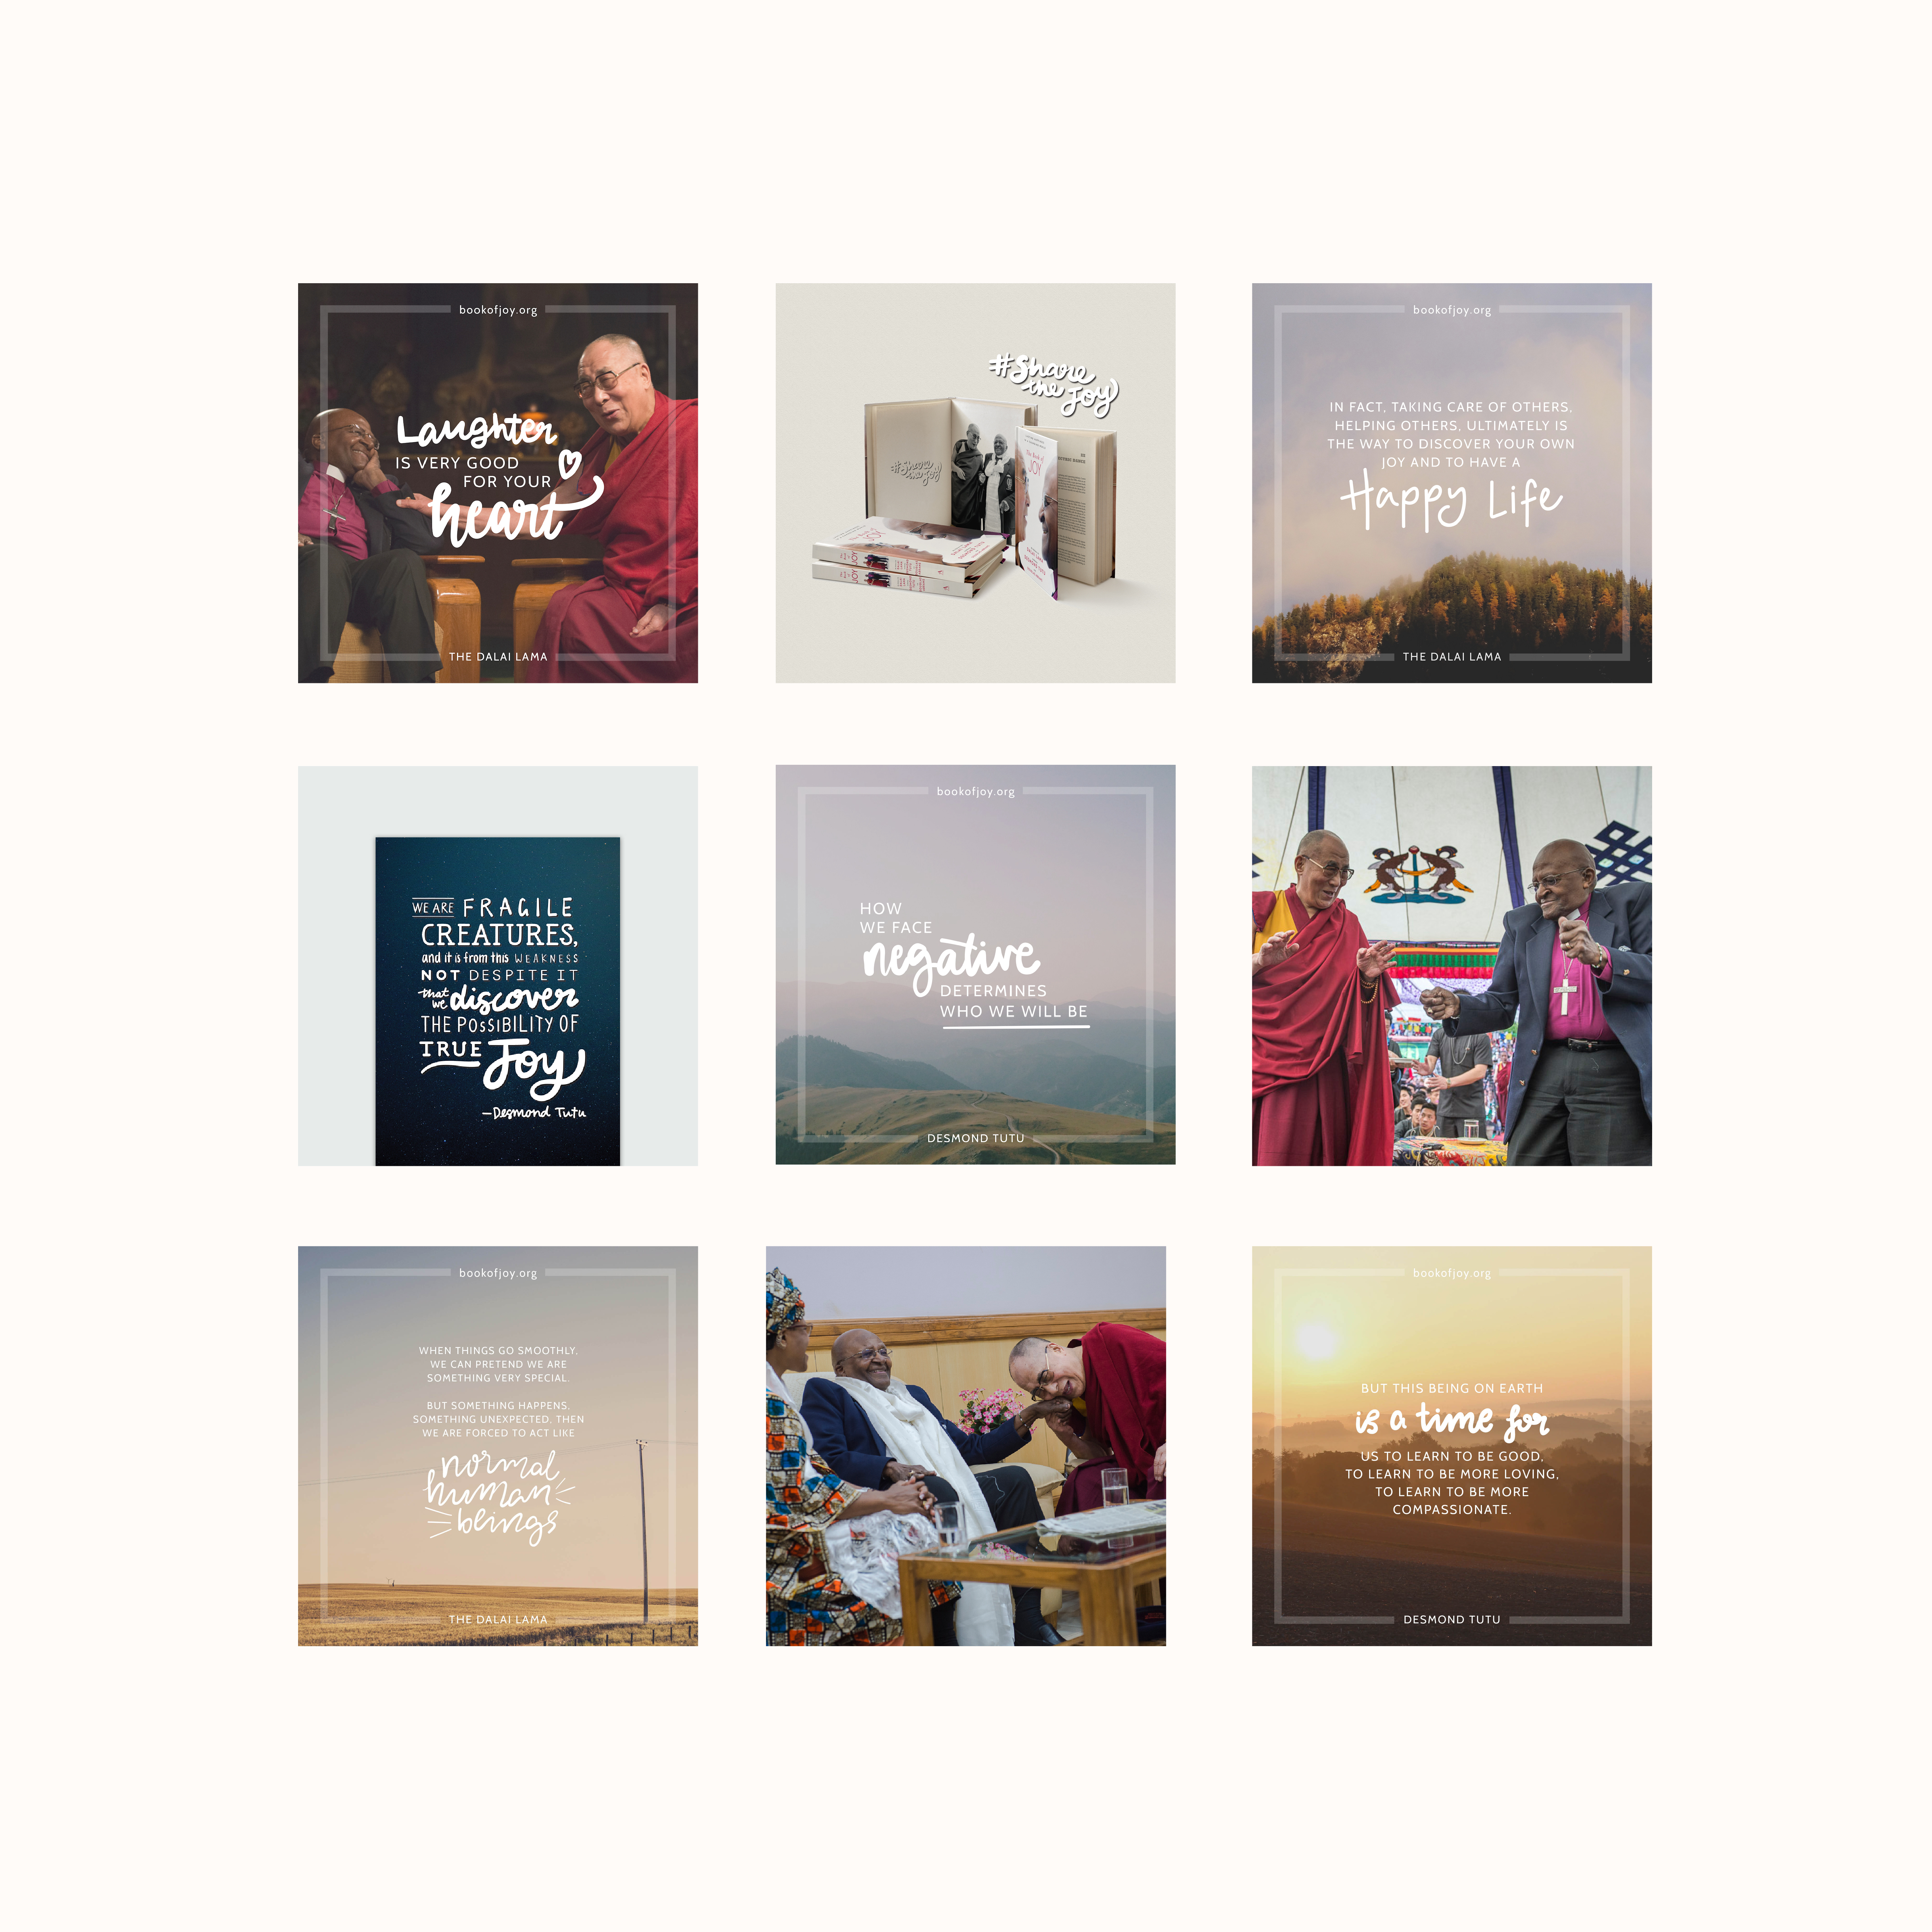 Book of Joy Dalai Lama Desmond Tutu - Identity Division - Social Media Design Instagram Layout Content Strategy Creation